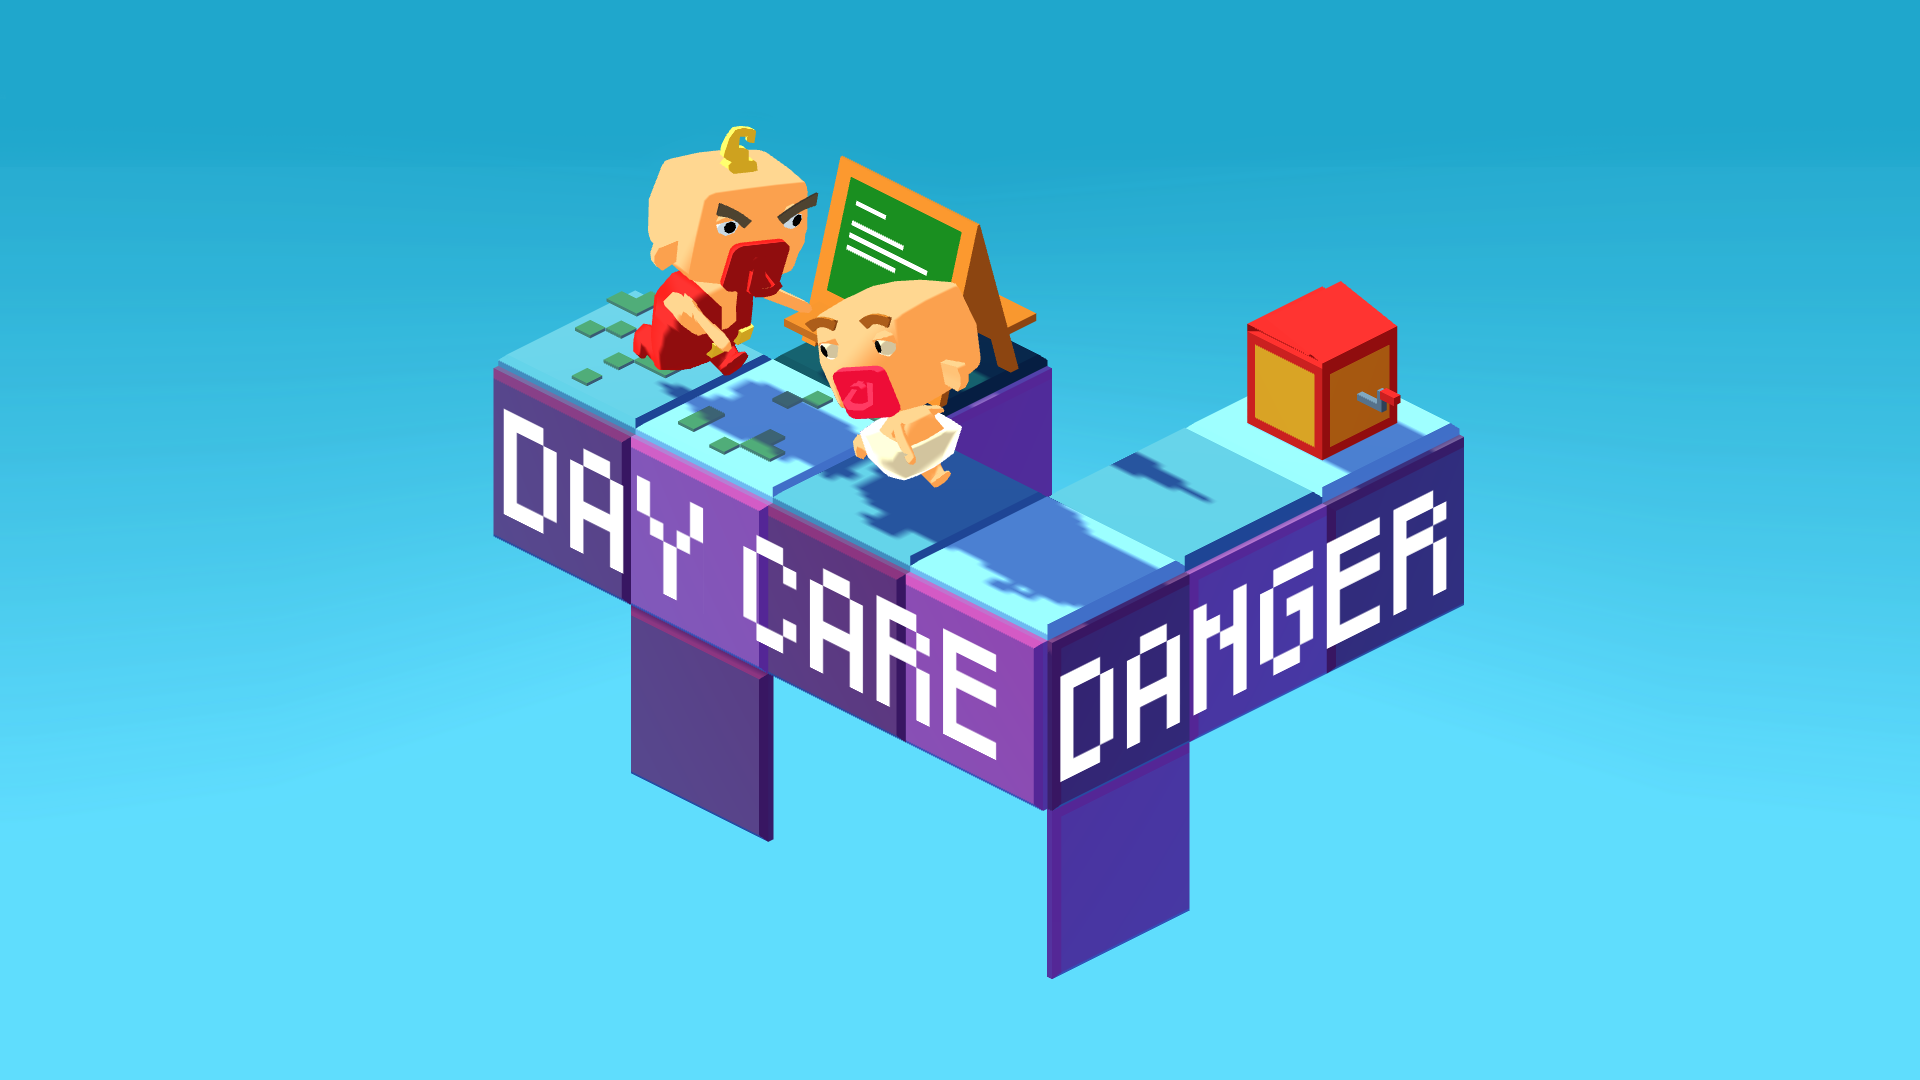 Day Care Danger